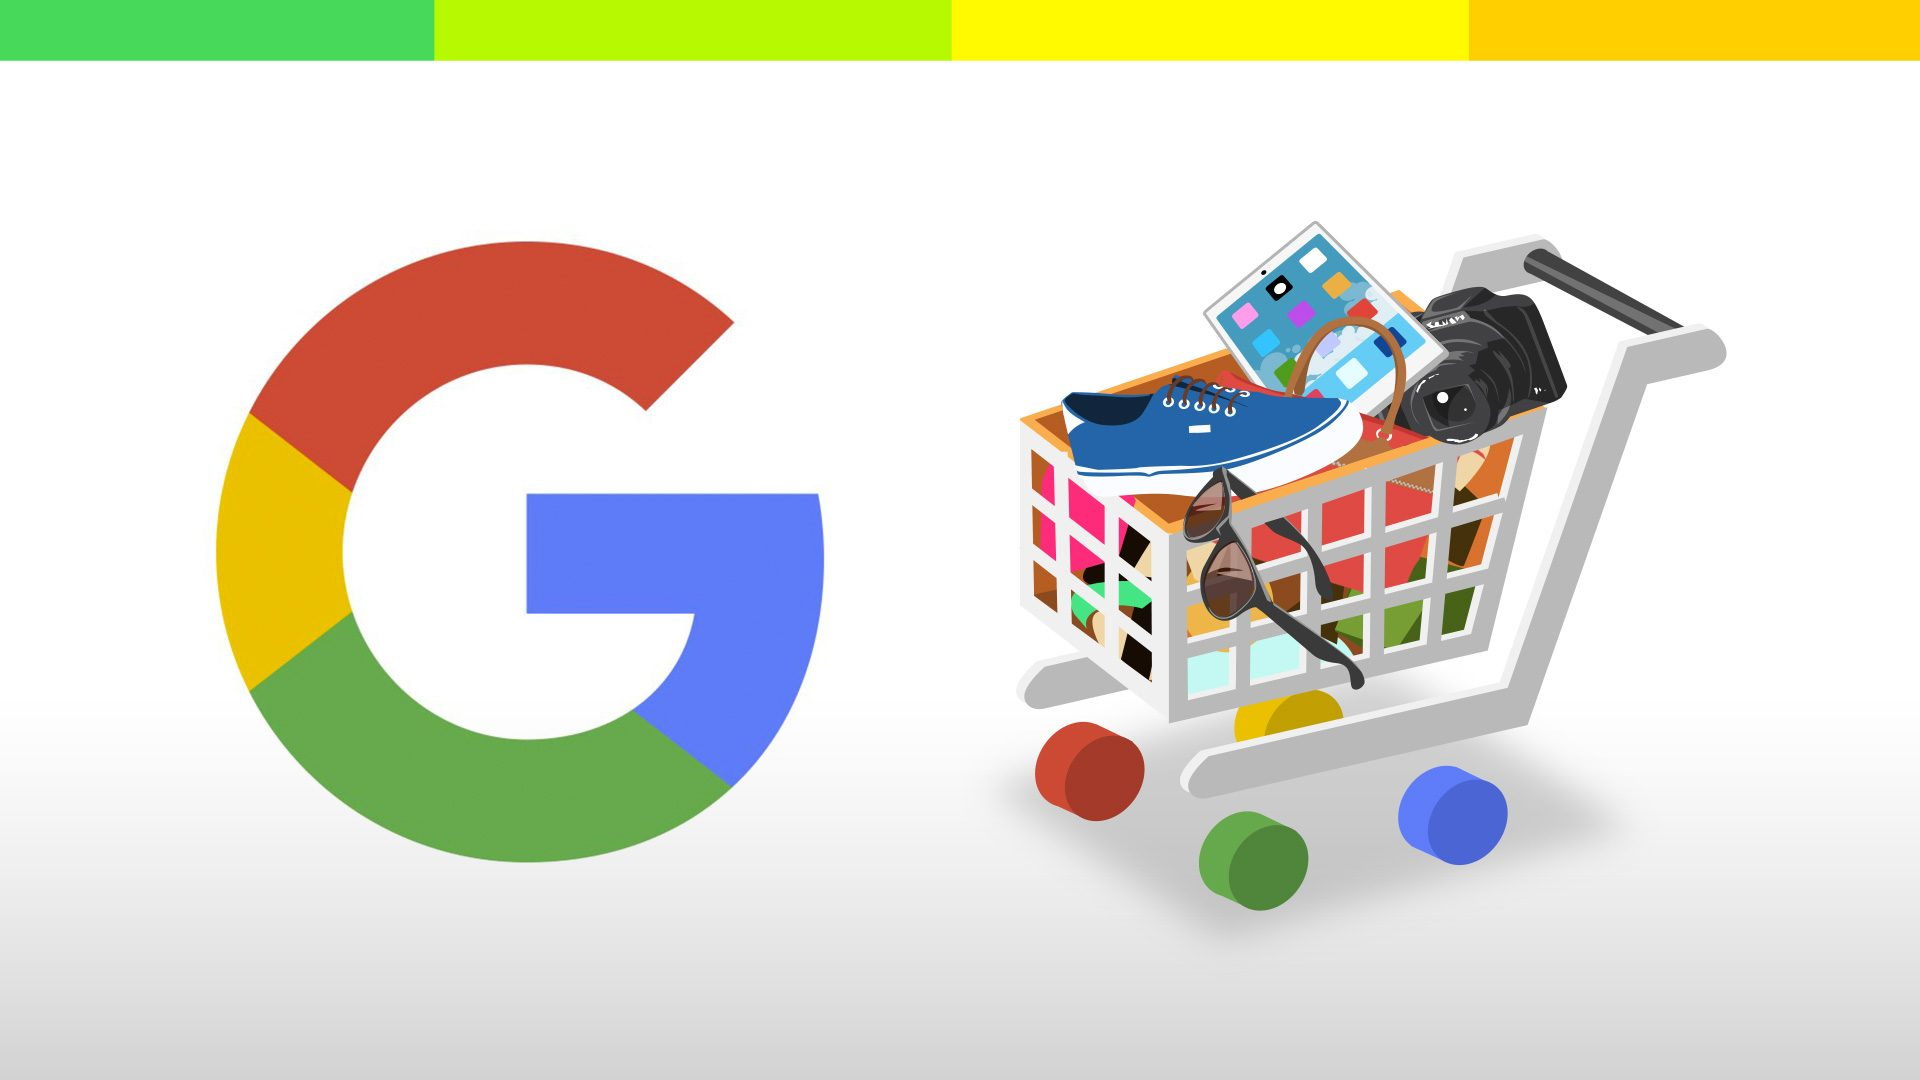 Google Shopping as an effective instrument in E-commerce